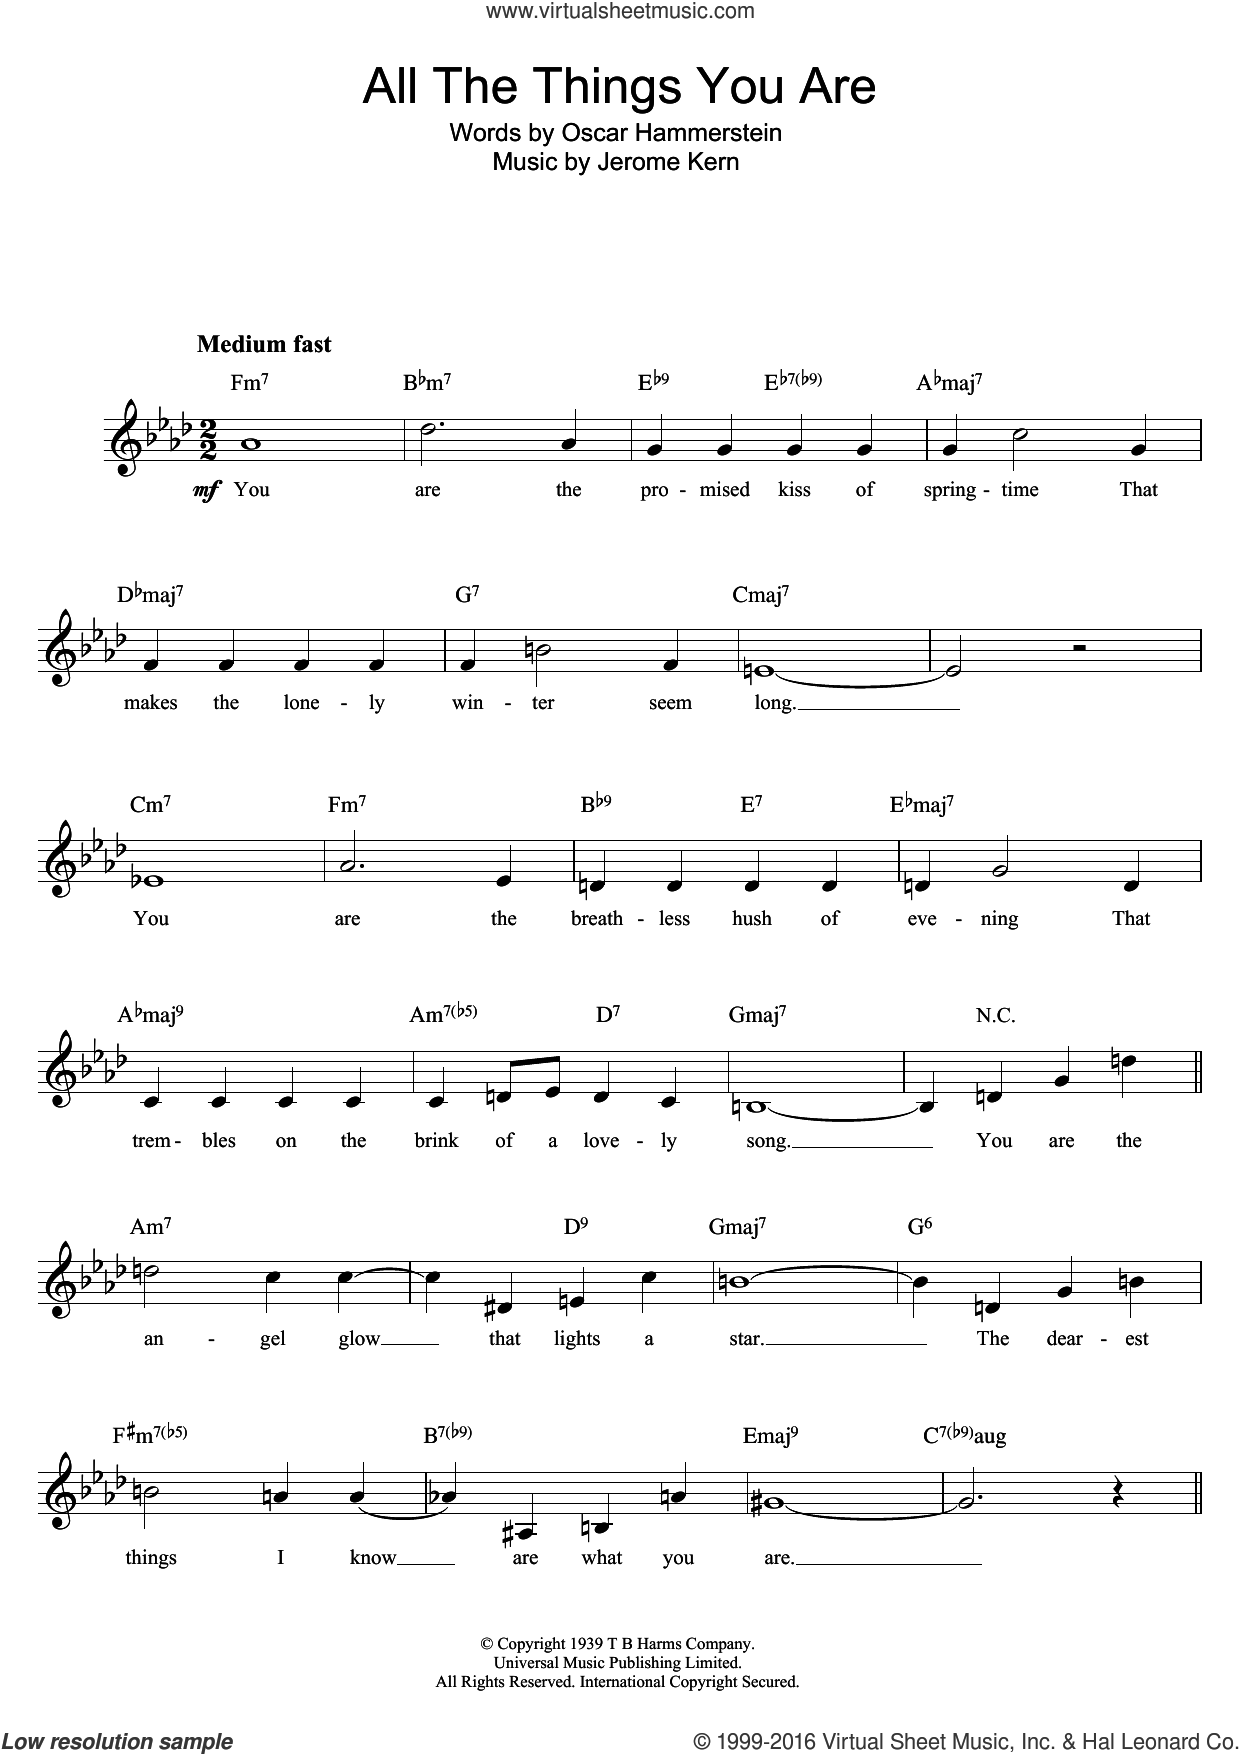 All The Things You Are sheet music for voice and other instruments (fake book) by Oscar II Hammerstein and Jerome Kern, intermediate skill level